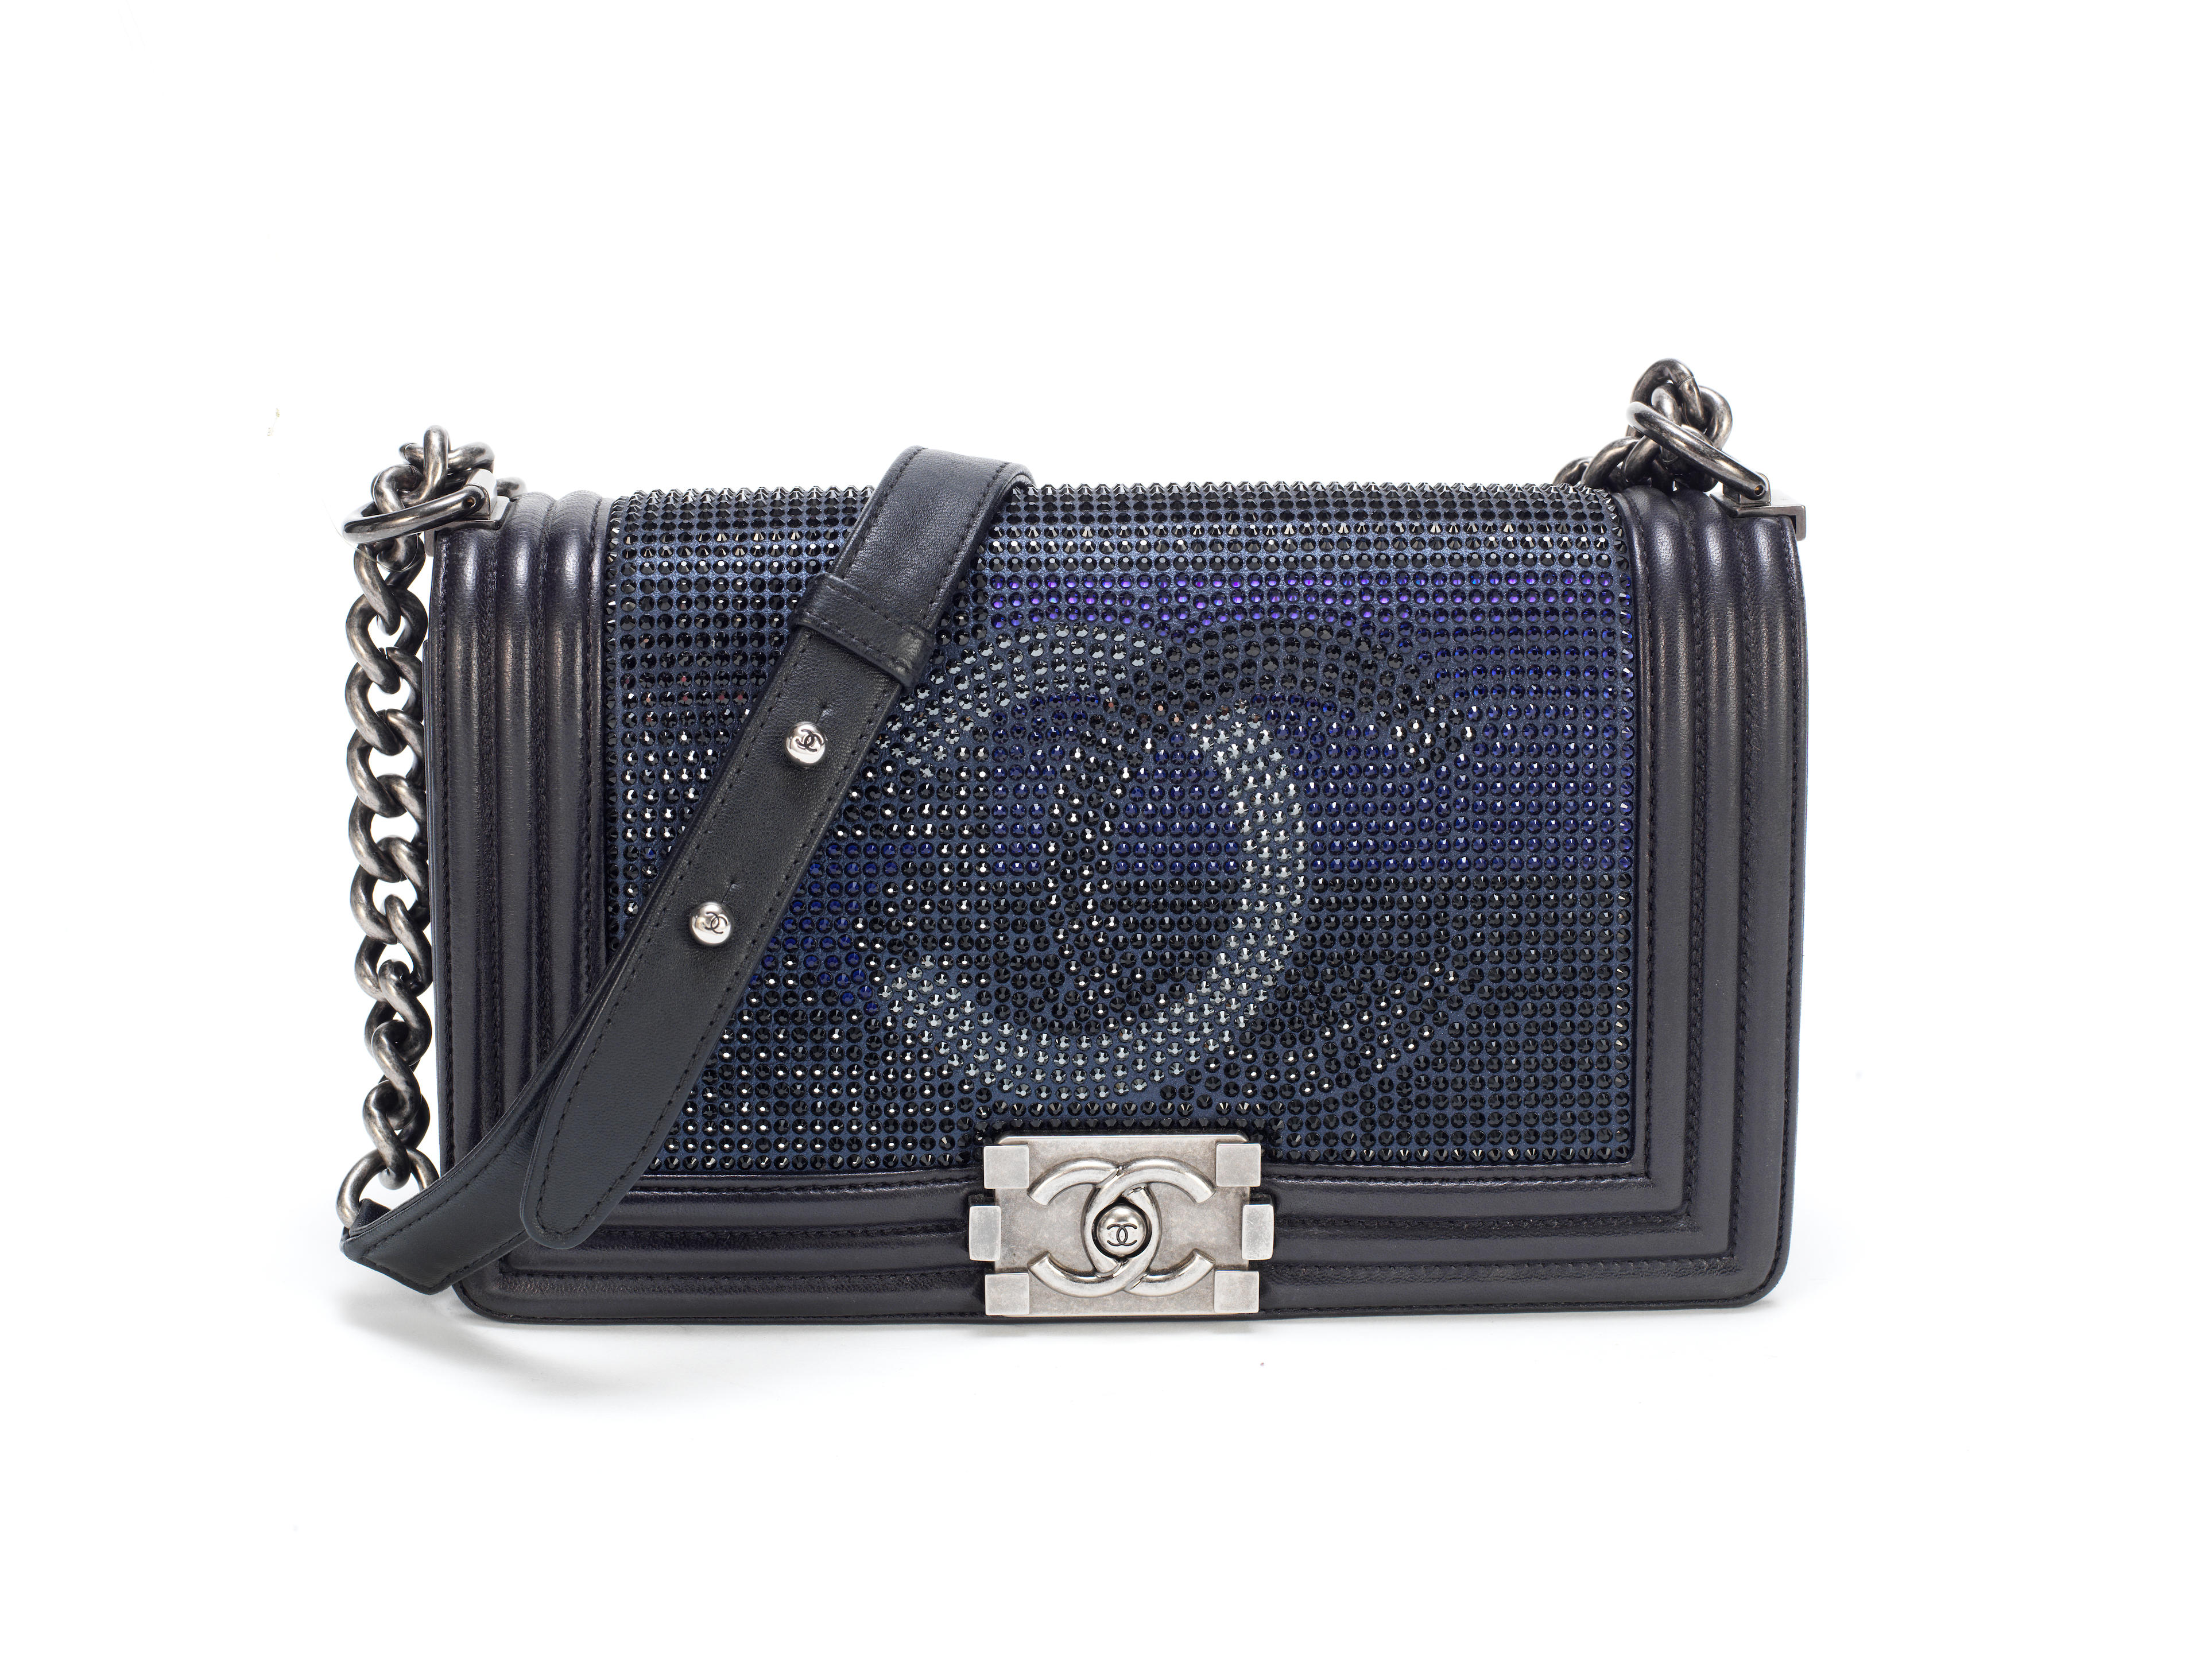 Blue Metallized Medium Boy Bag, Chanel, Pre-Fall 2014 Dallas Collection, (Includes serial sticker, authenticity card, dust bag and box)